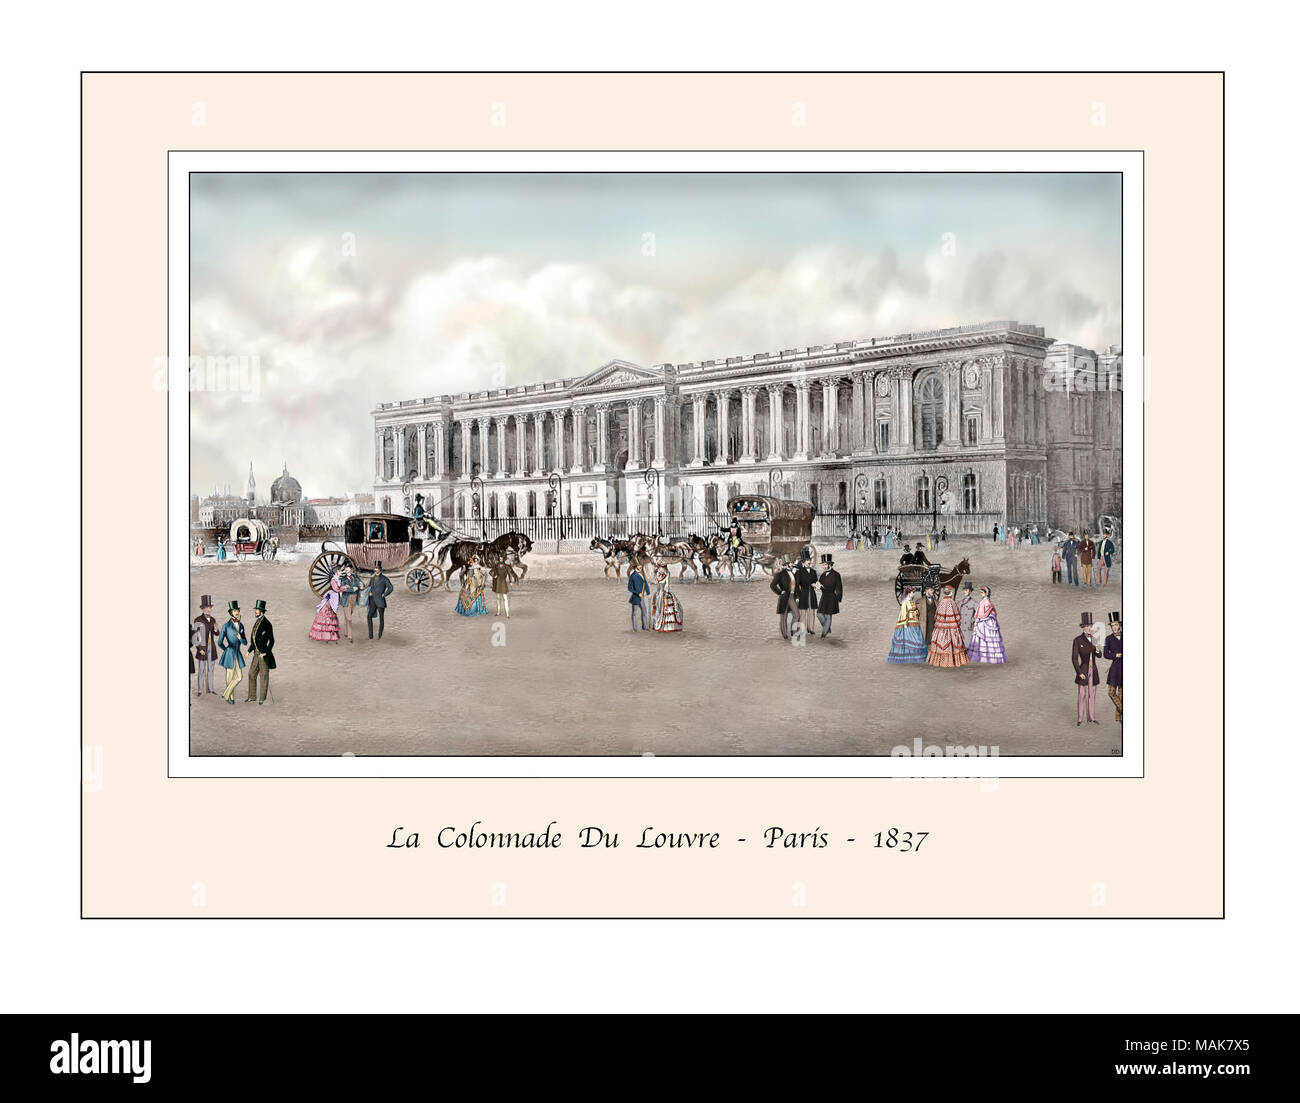 Louvre Paris Original Design from a 19th century Engraving - Stock Image